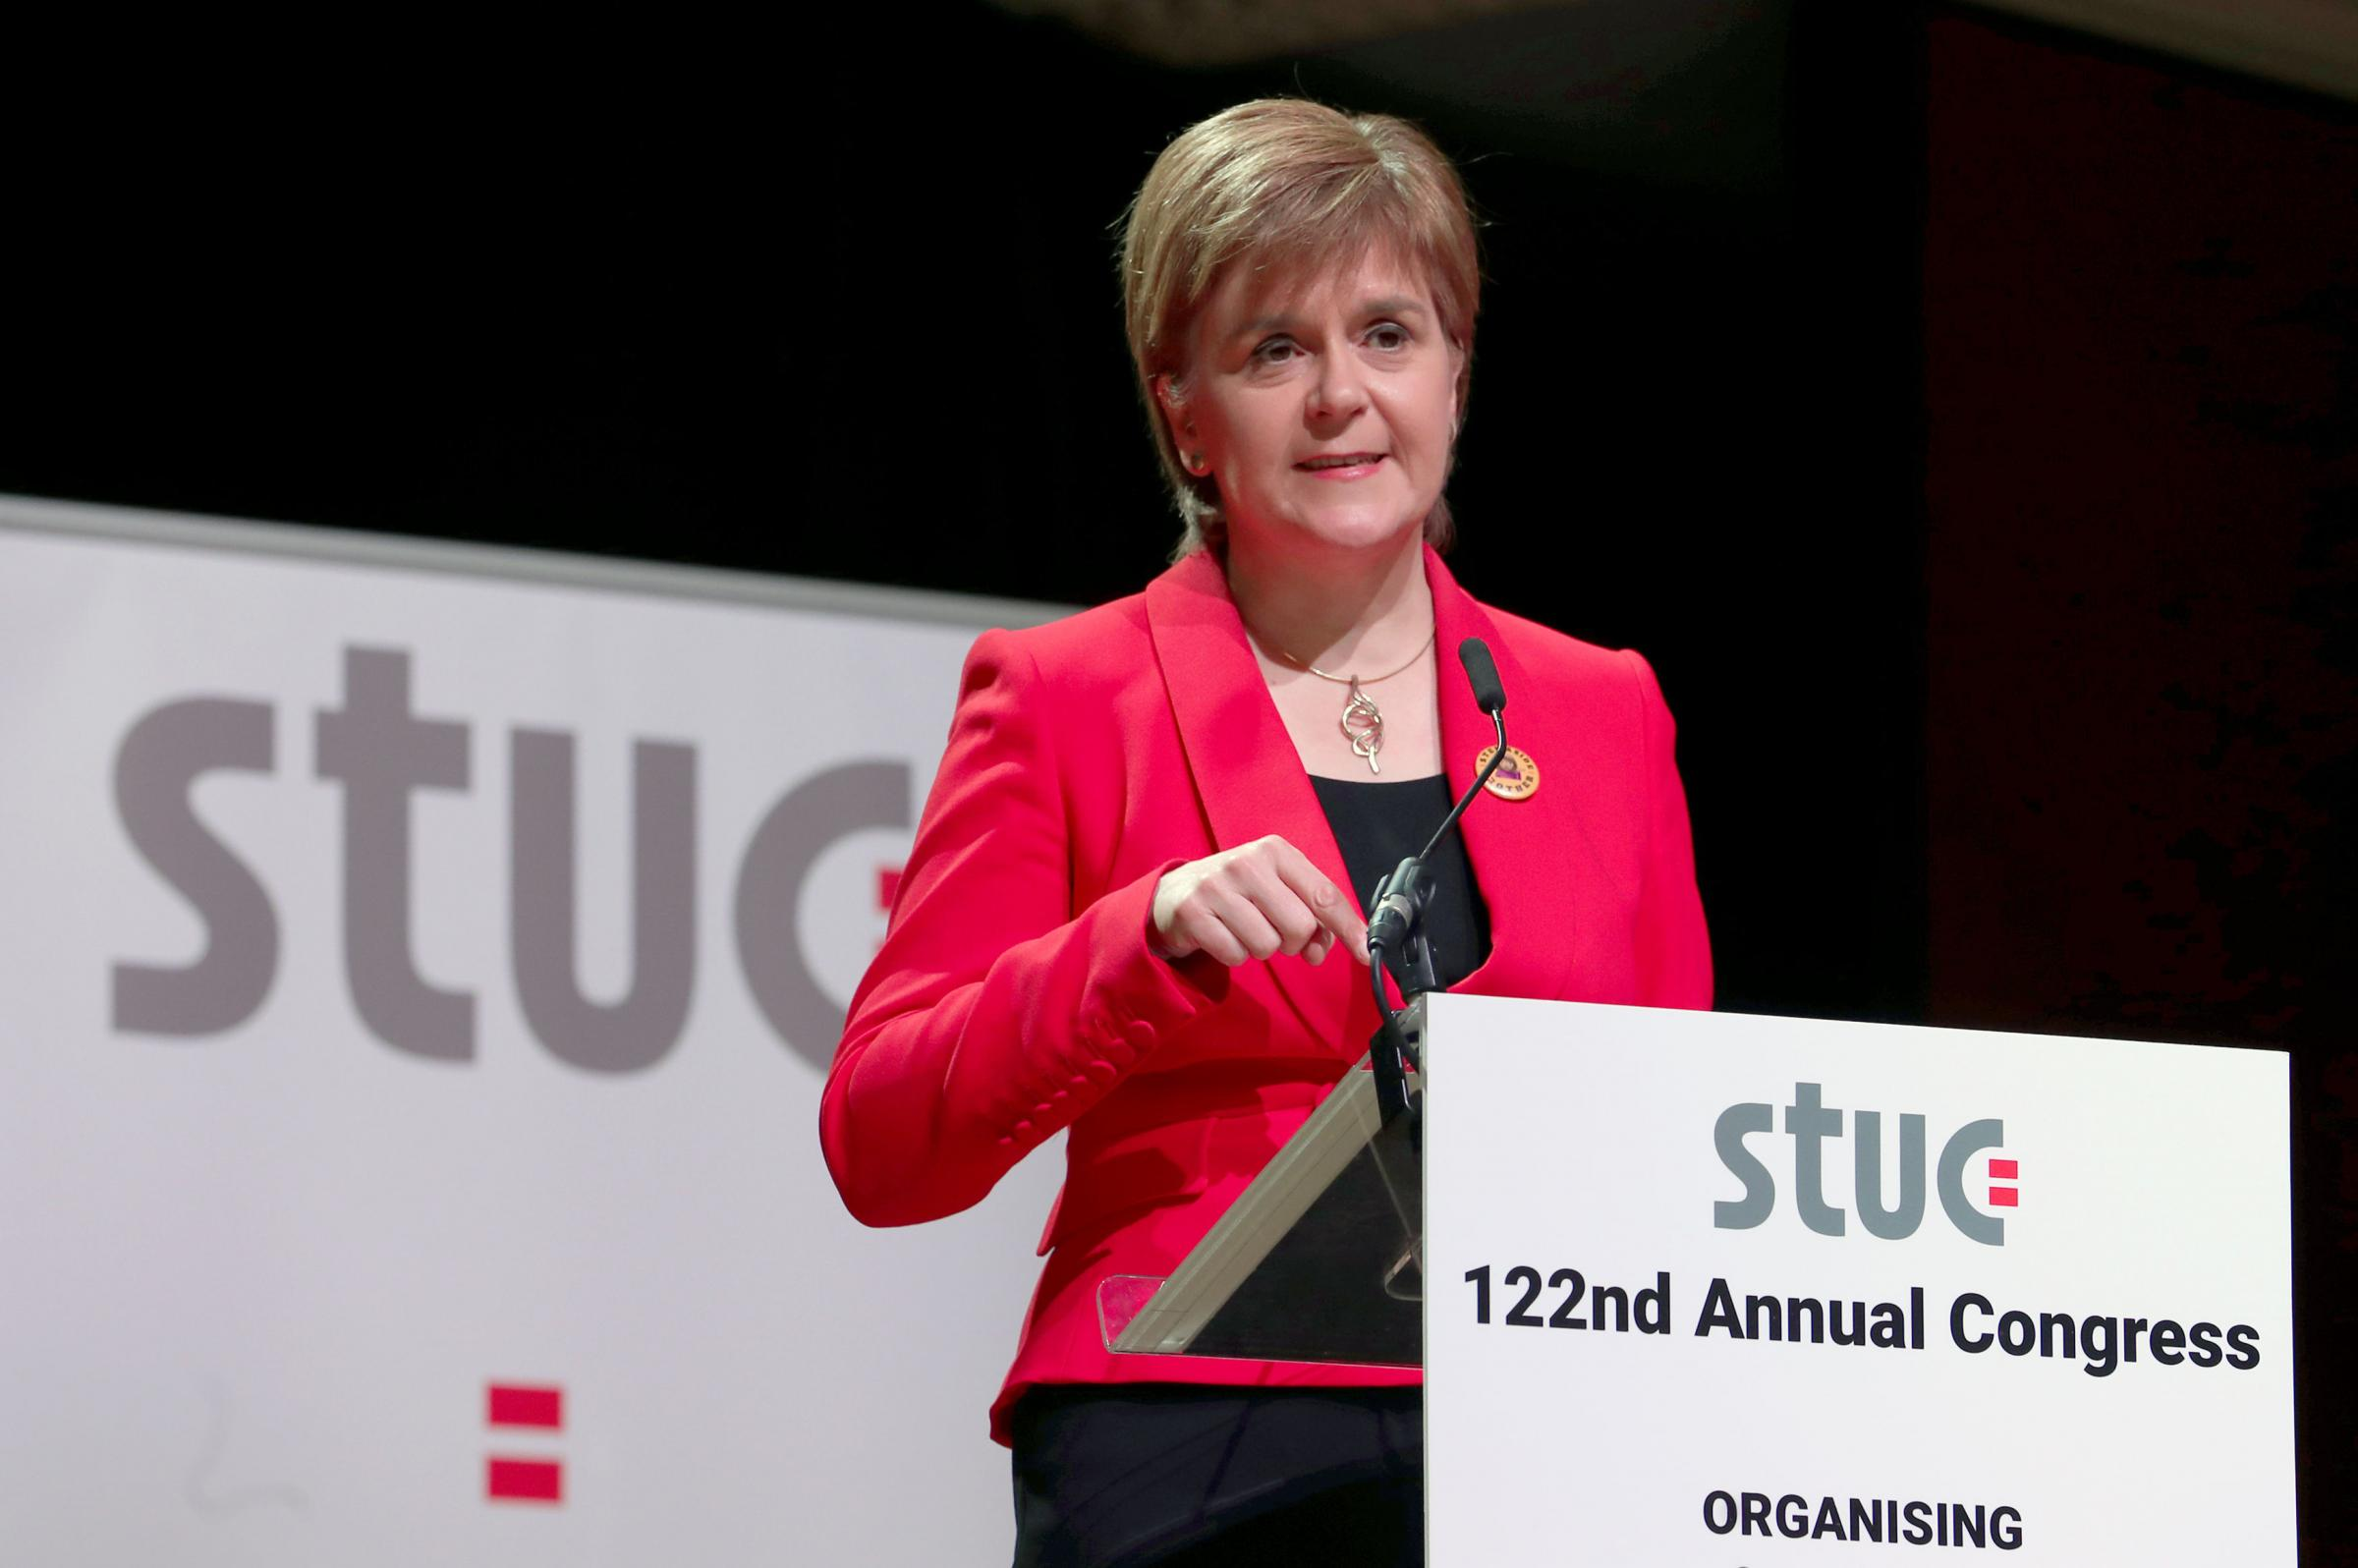 Nicola Sturgeon was speaking at the STUC conference  in Dundee